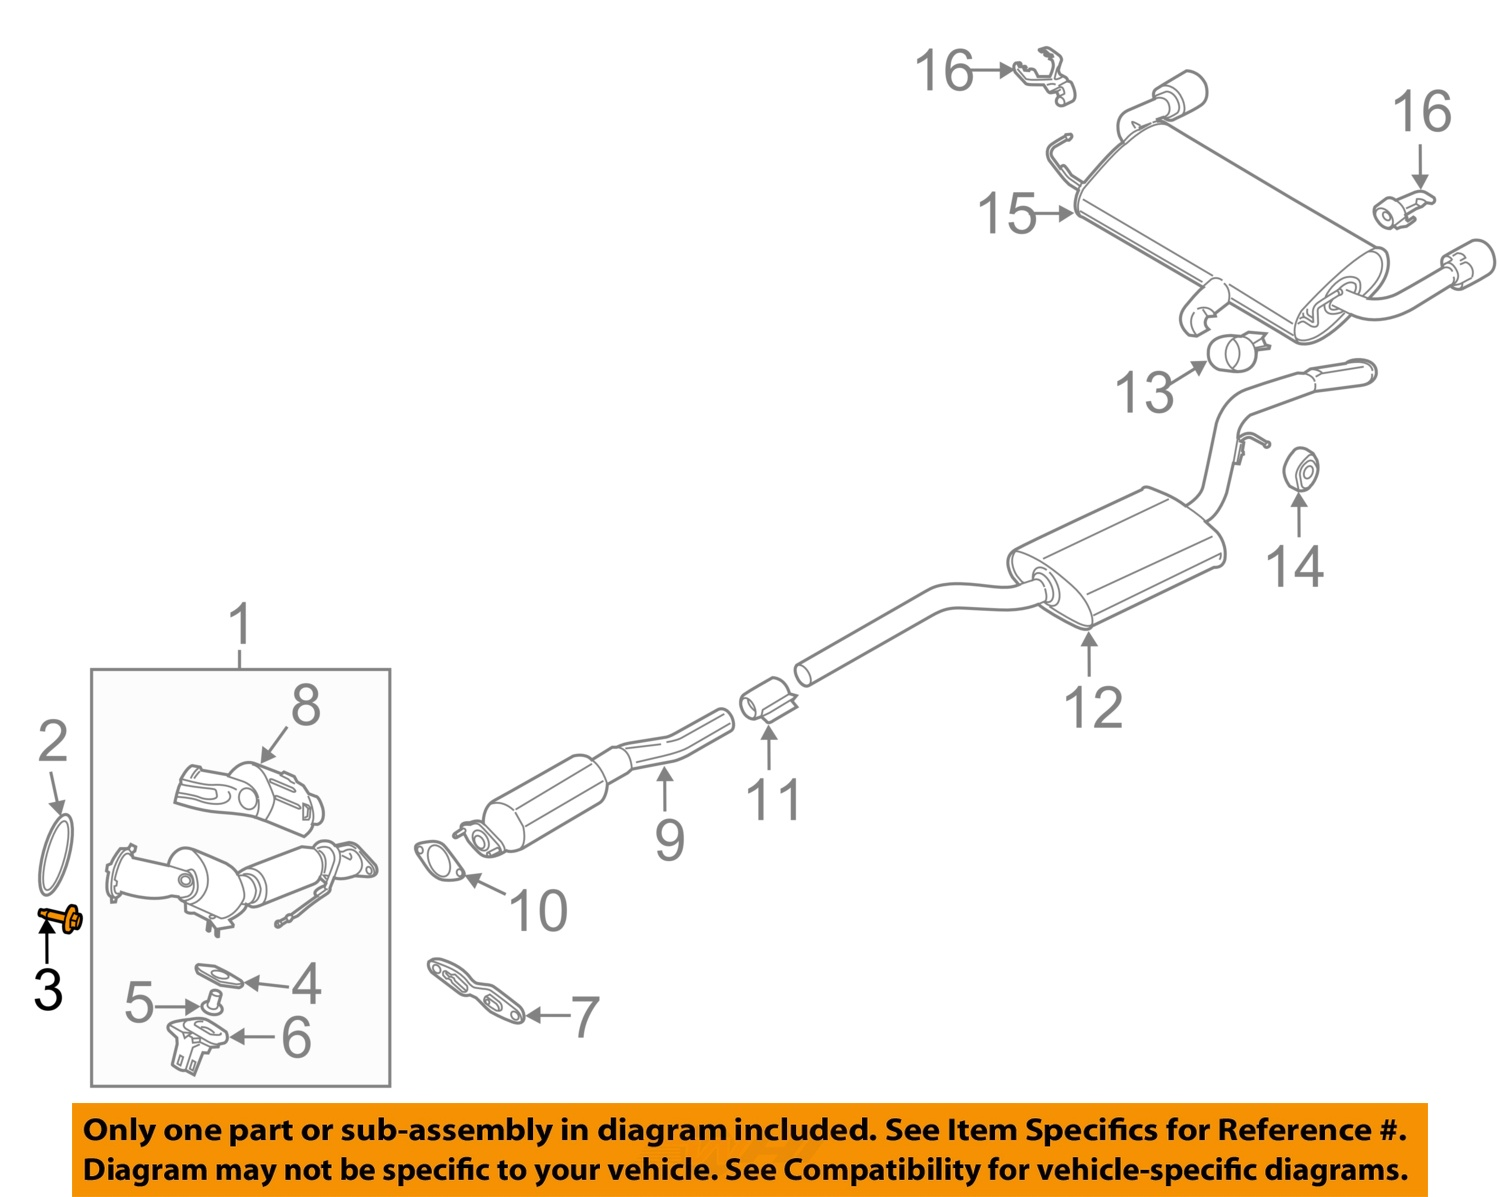 Ford Oem Transit Connect Exhaust System